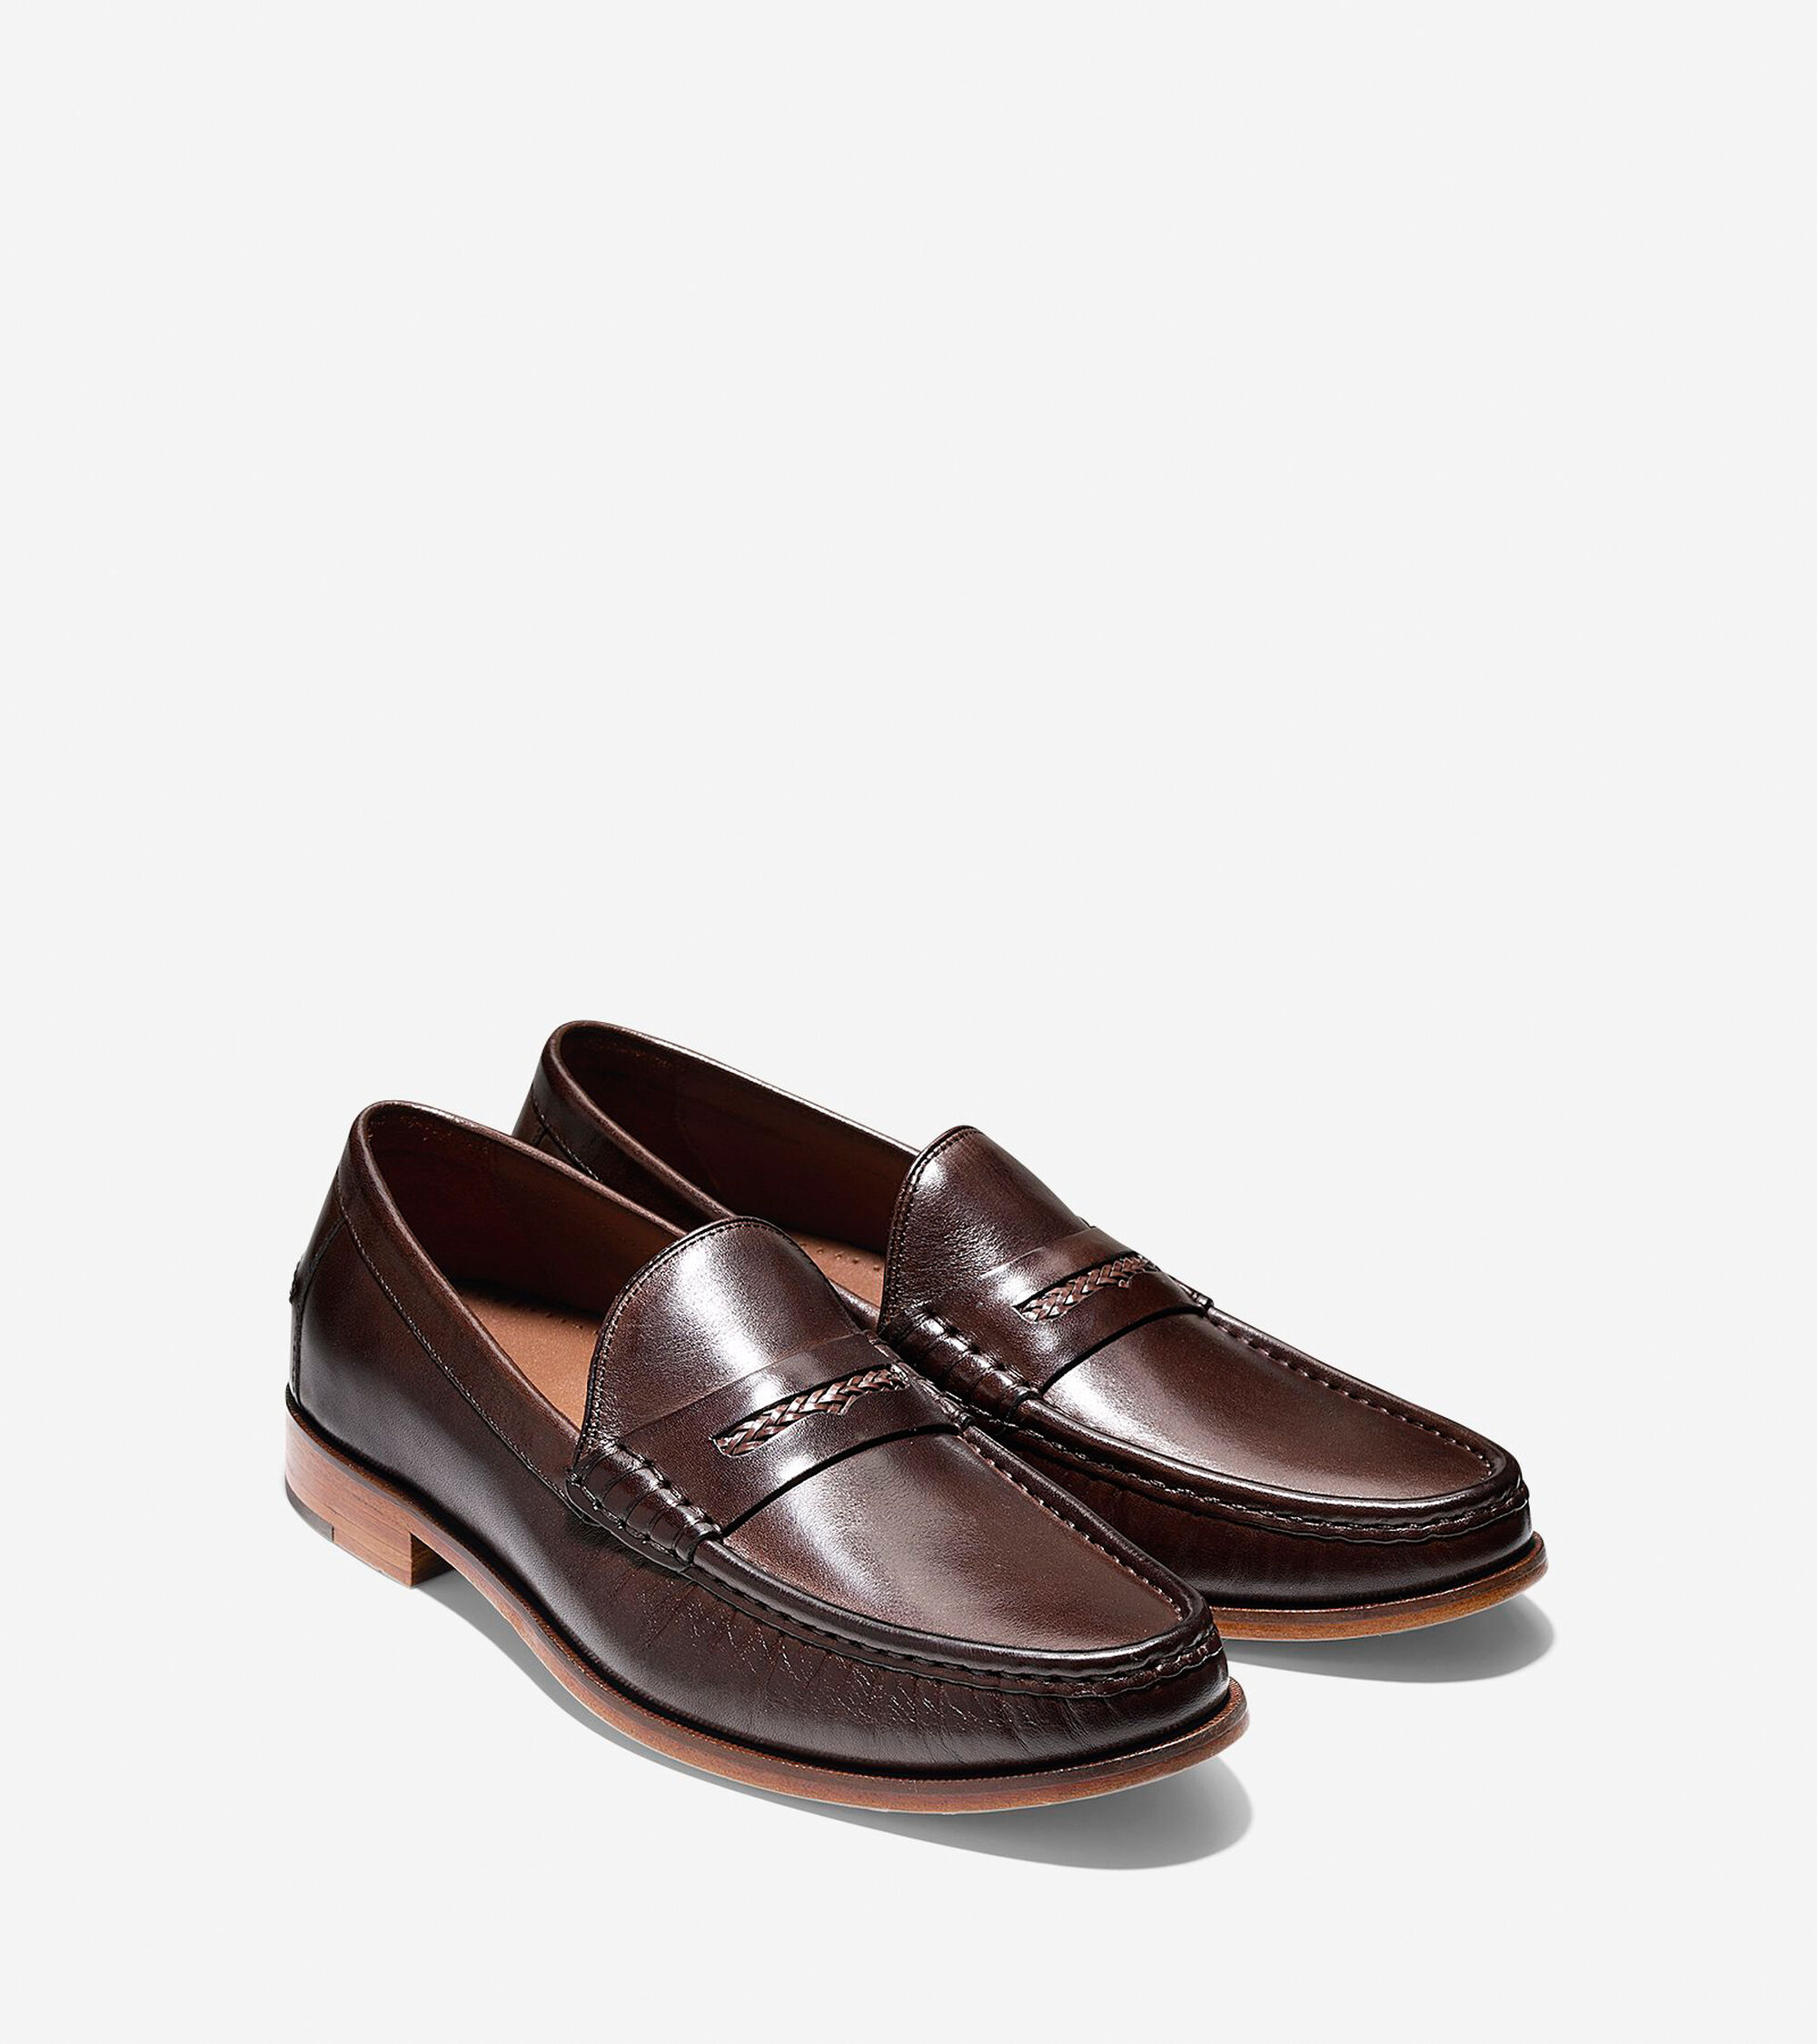 d4841282e15 Mens Pinch Gotham Penny Loafers in Chestnut